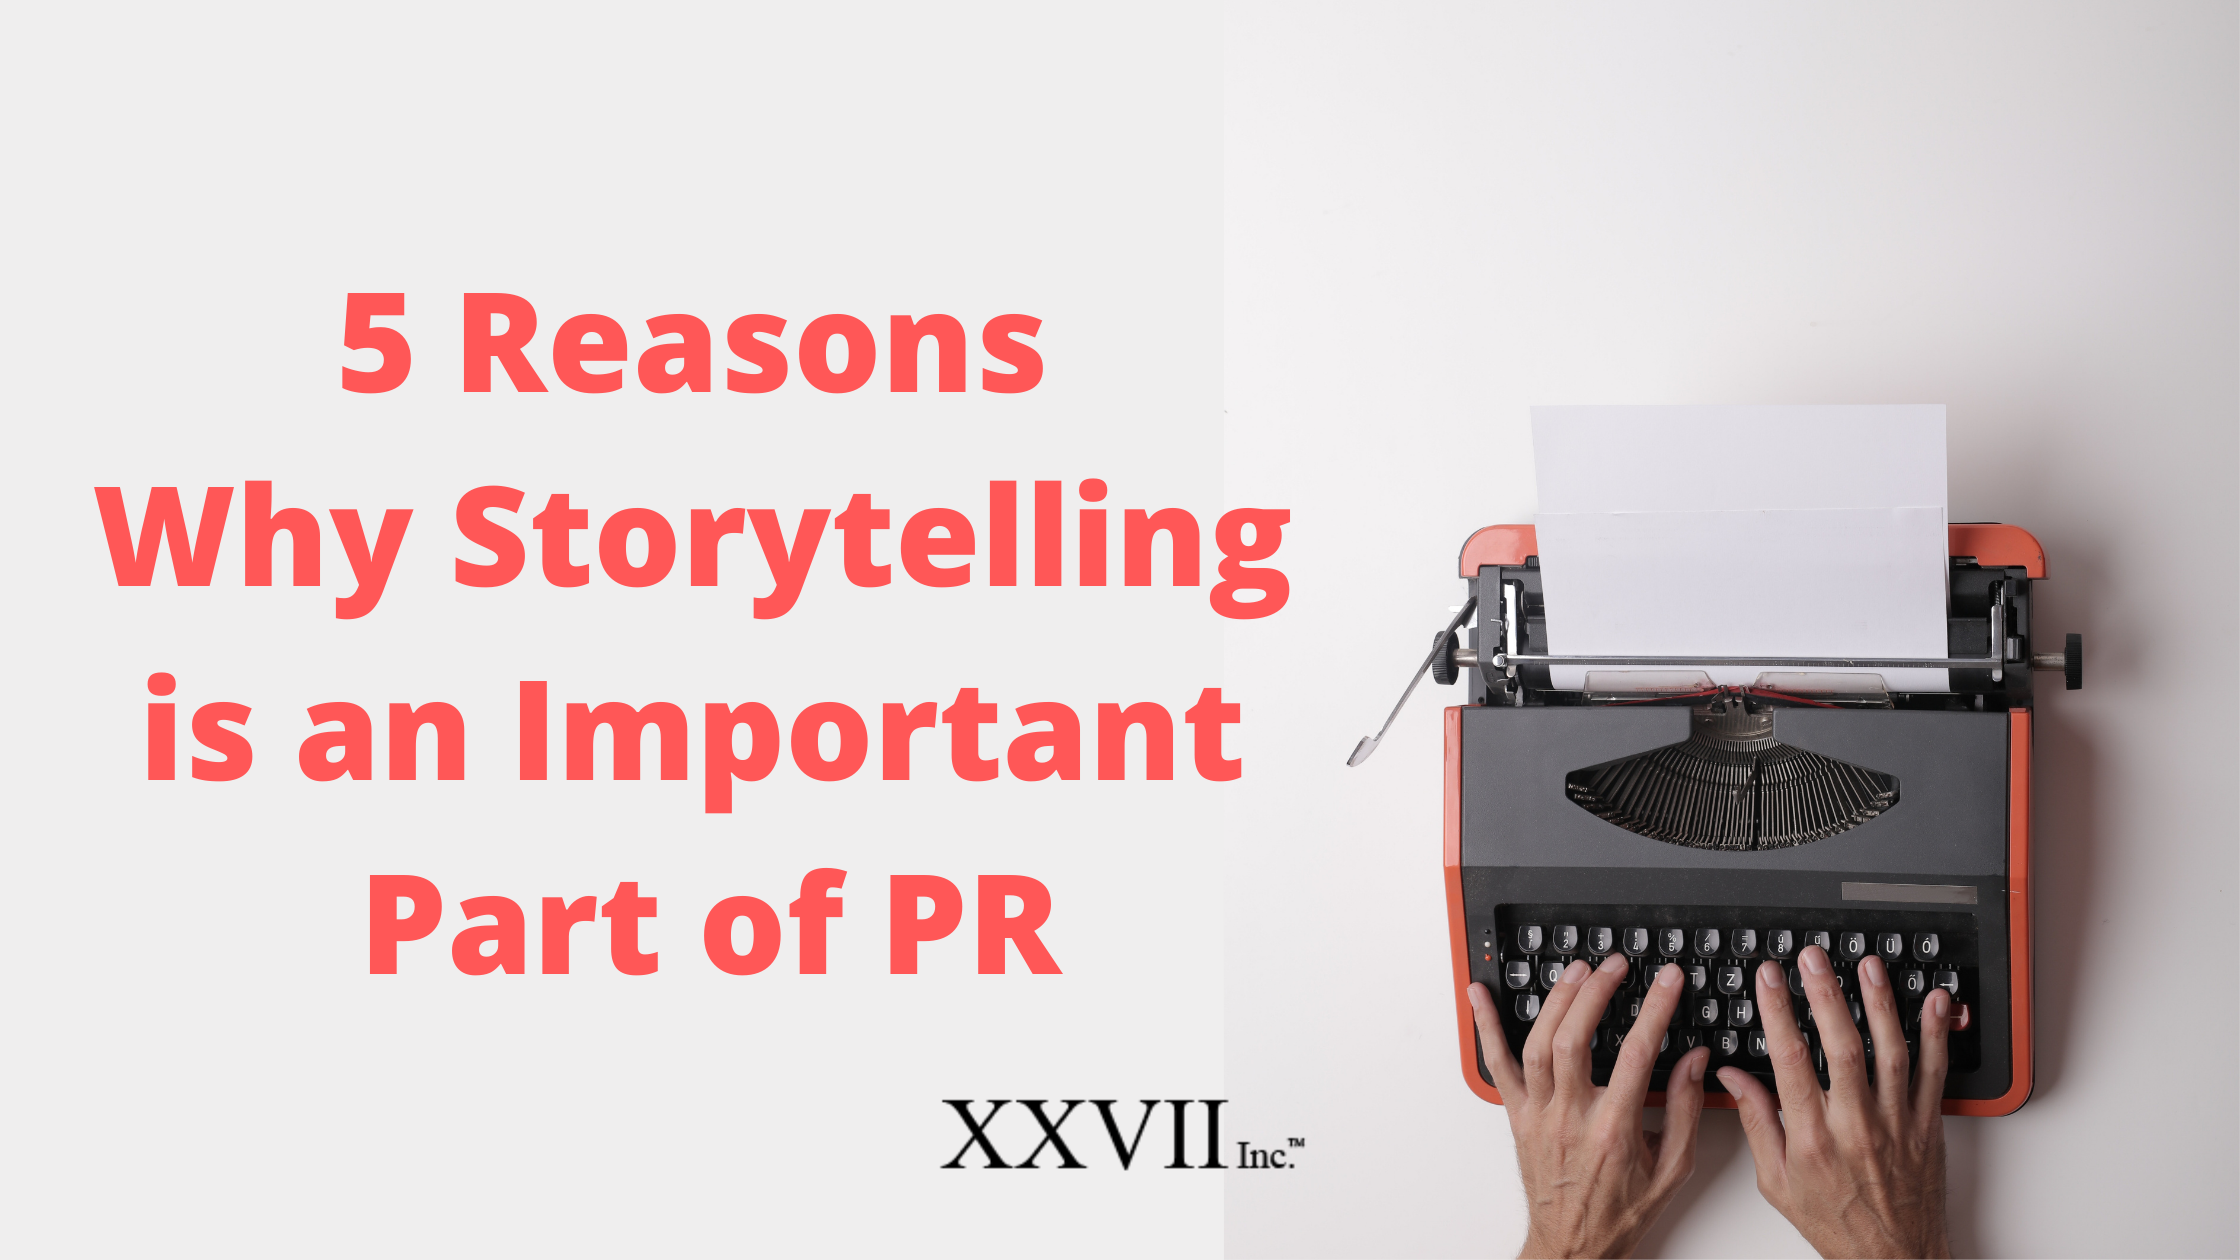 5 Reasons Why Storytelling Is An Important Part Of PR